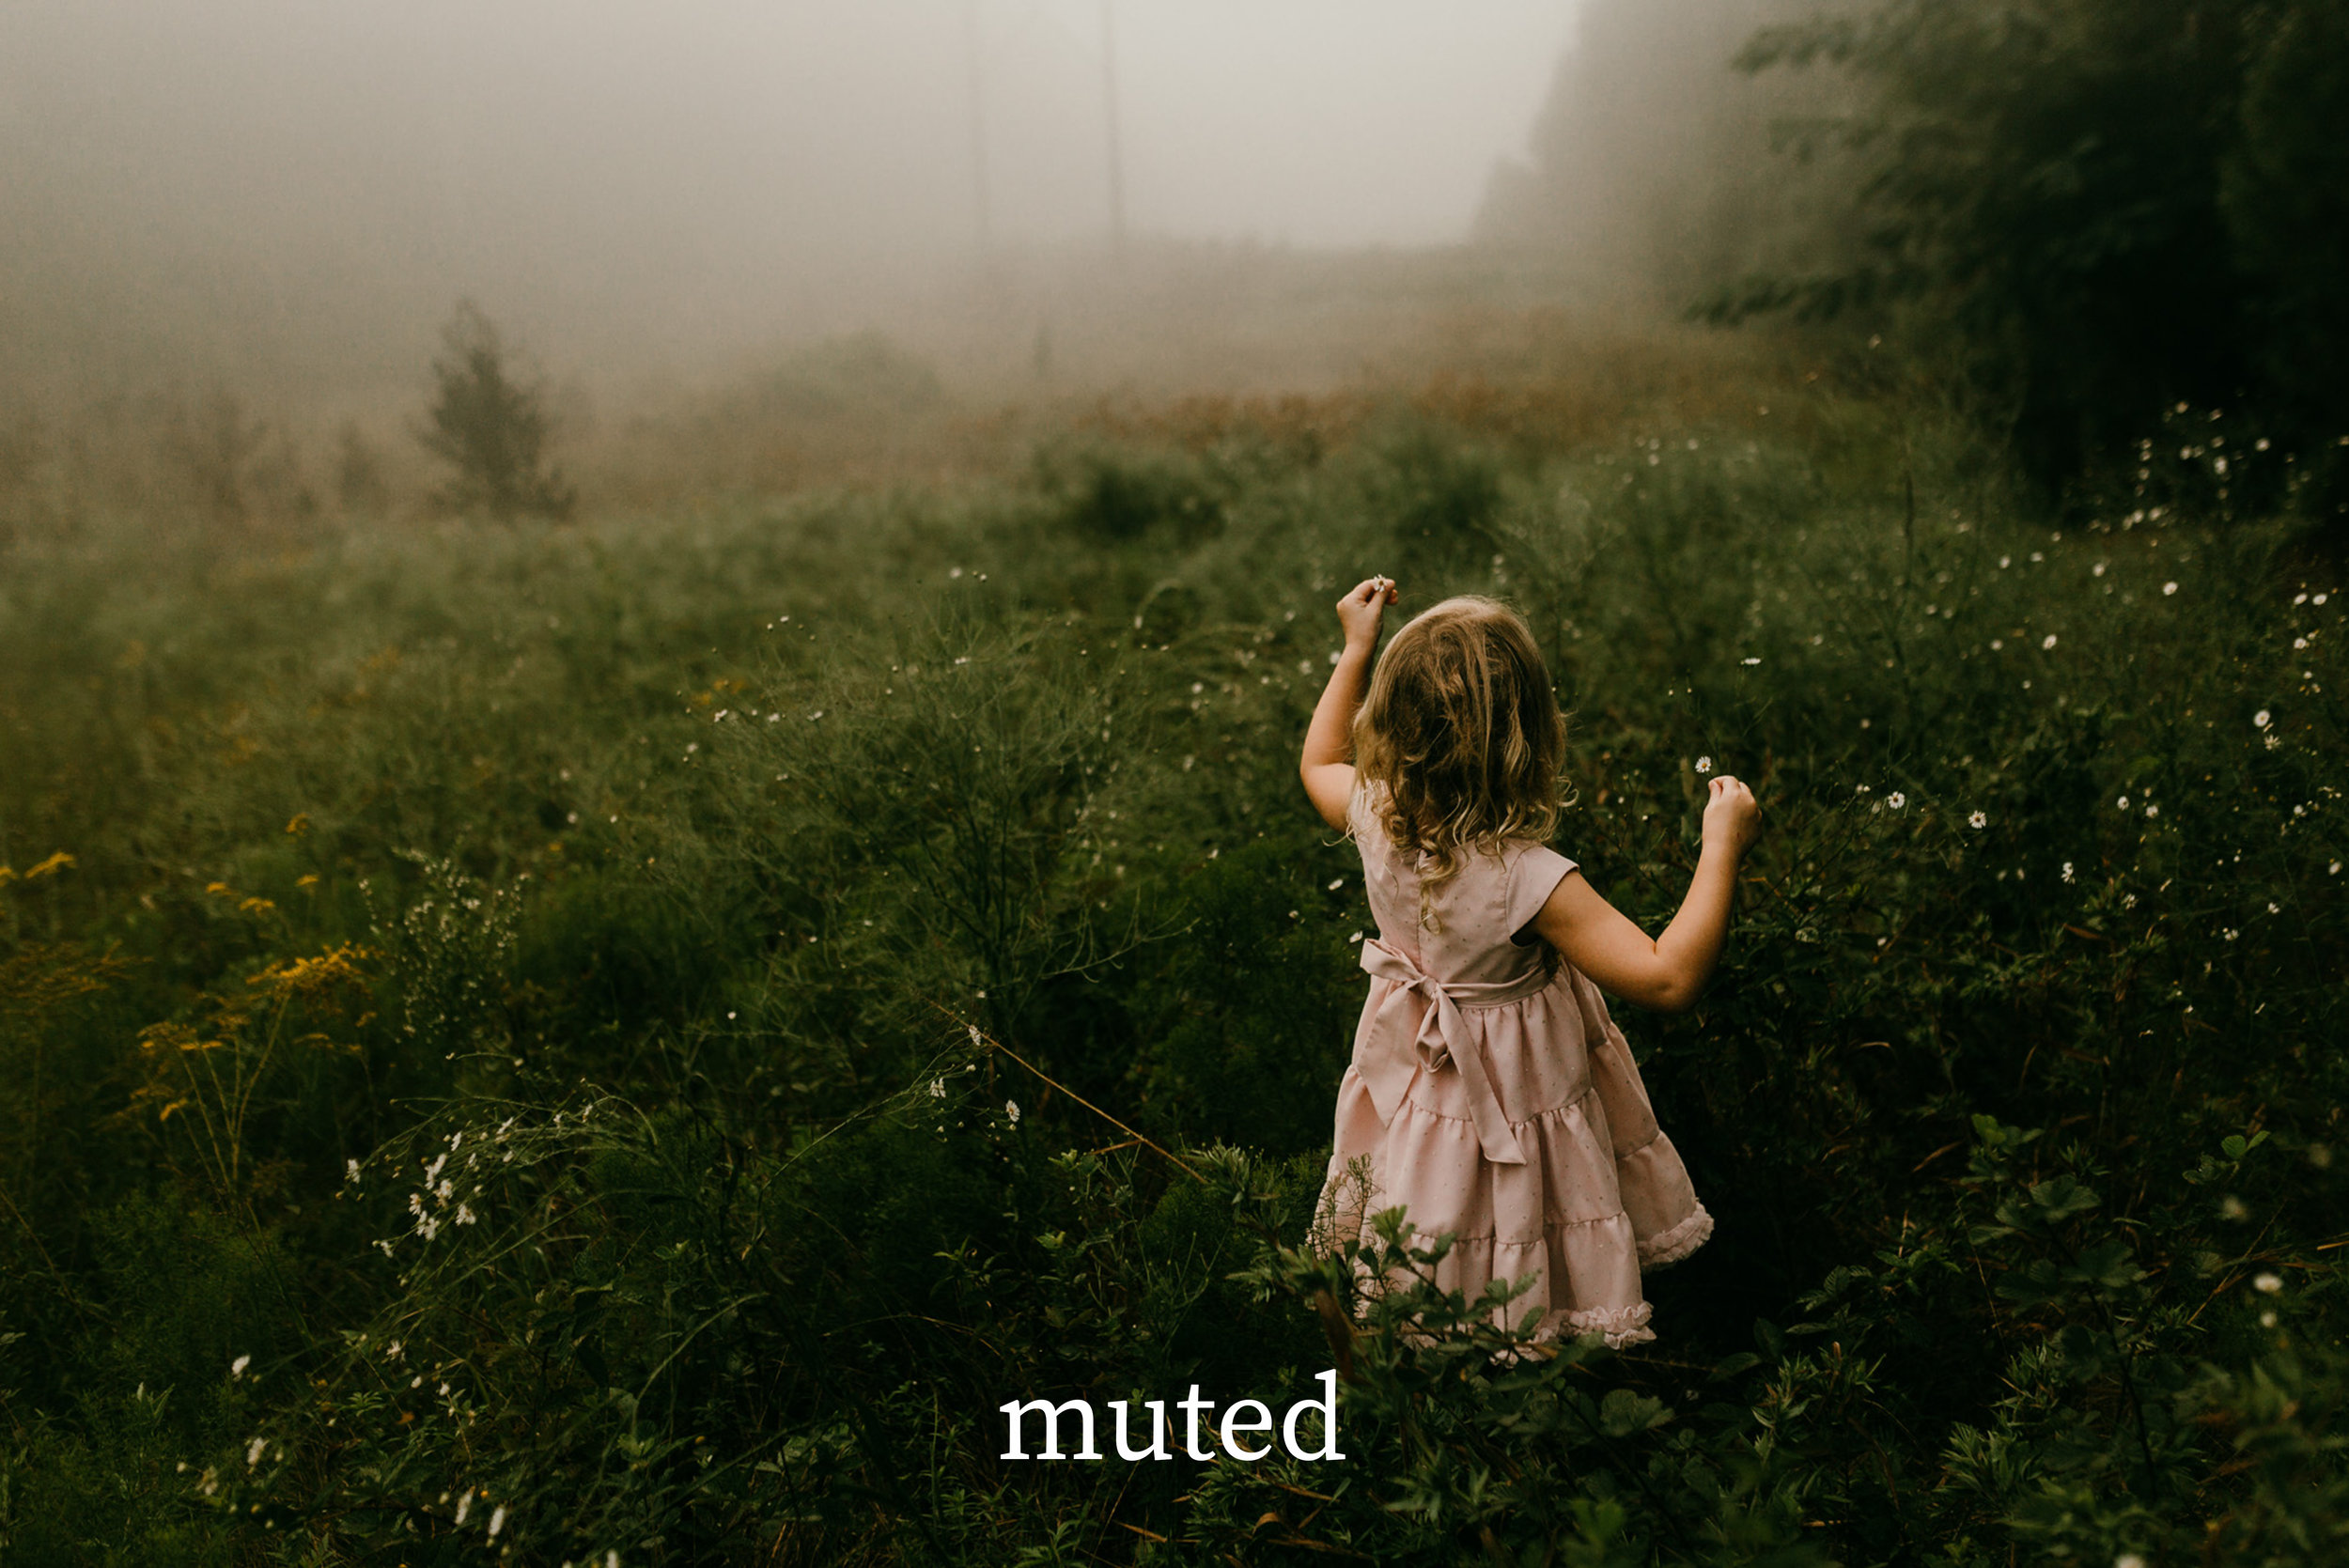 muted   - the ultimate film-esque effect: dreamy muted soft tones to draw out that emotive flare you've been searching for.